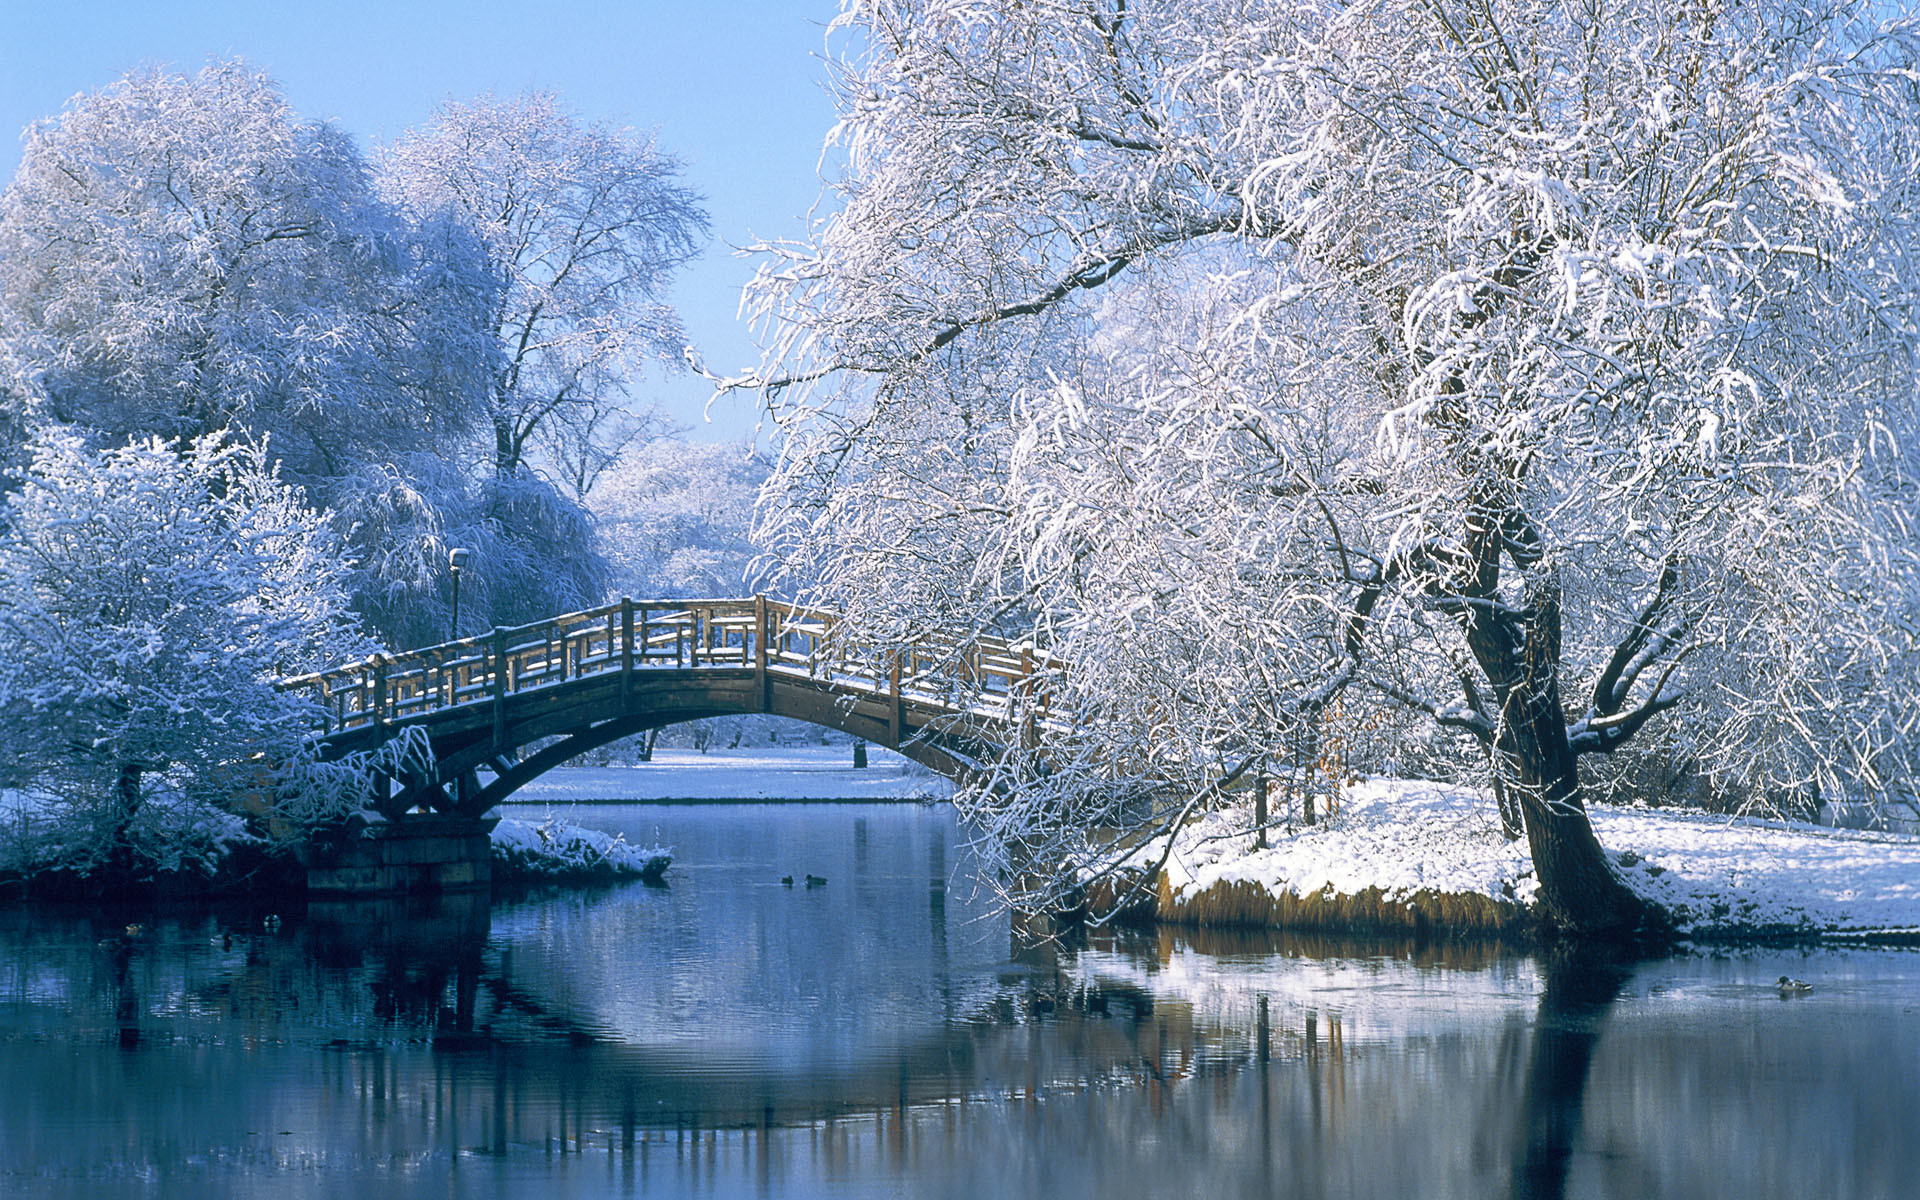 Related Wallpapers from Central Park NYC. Photography – Winter Landscape  Pond Water Bridge Tree Reflection Snow Wallpaper